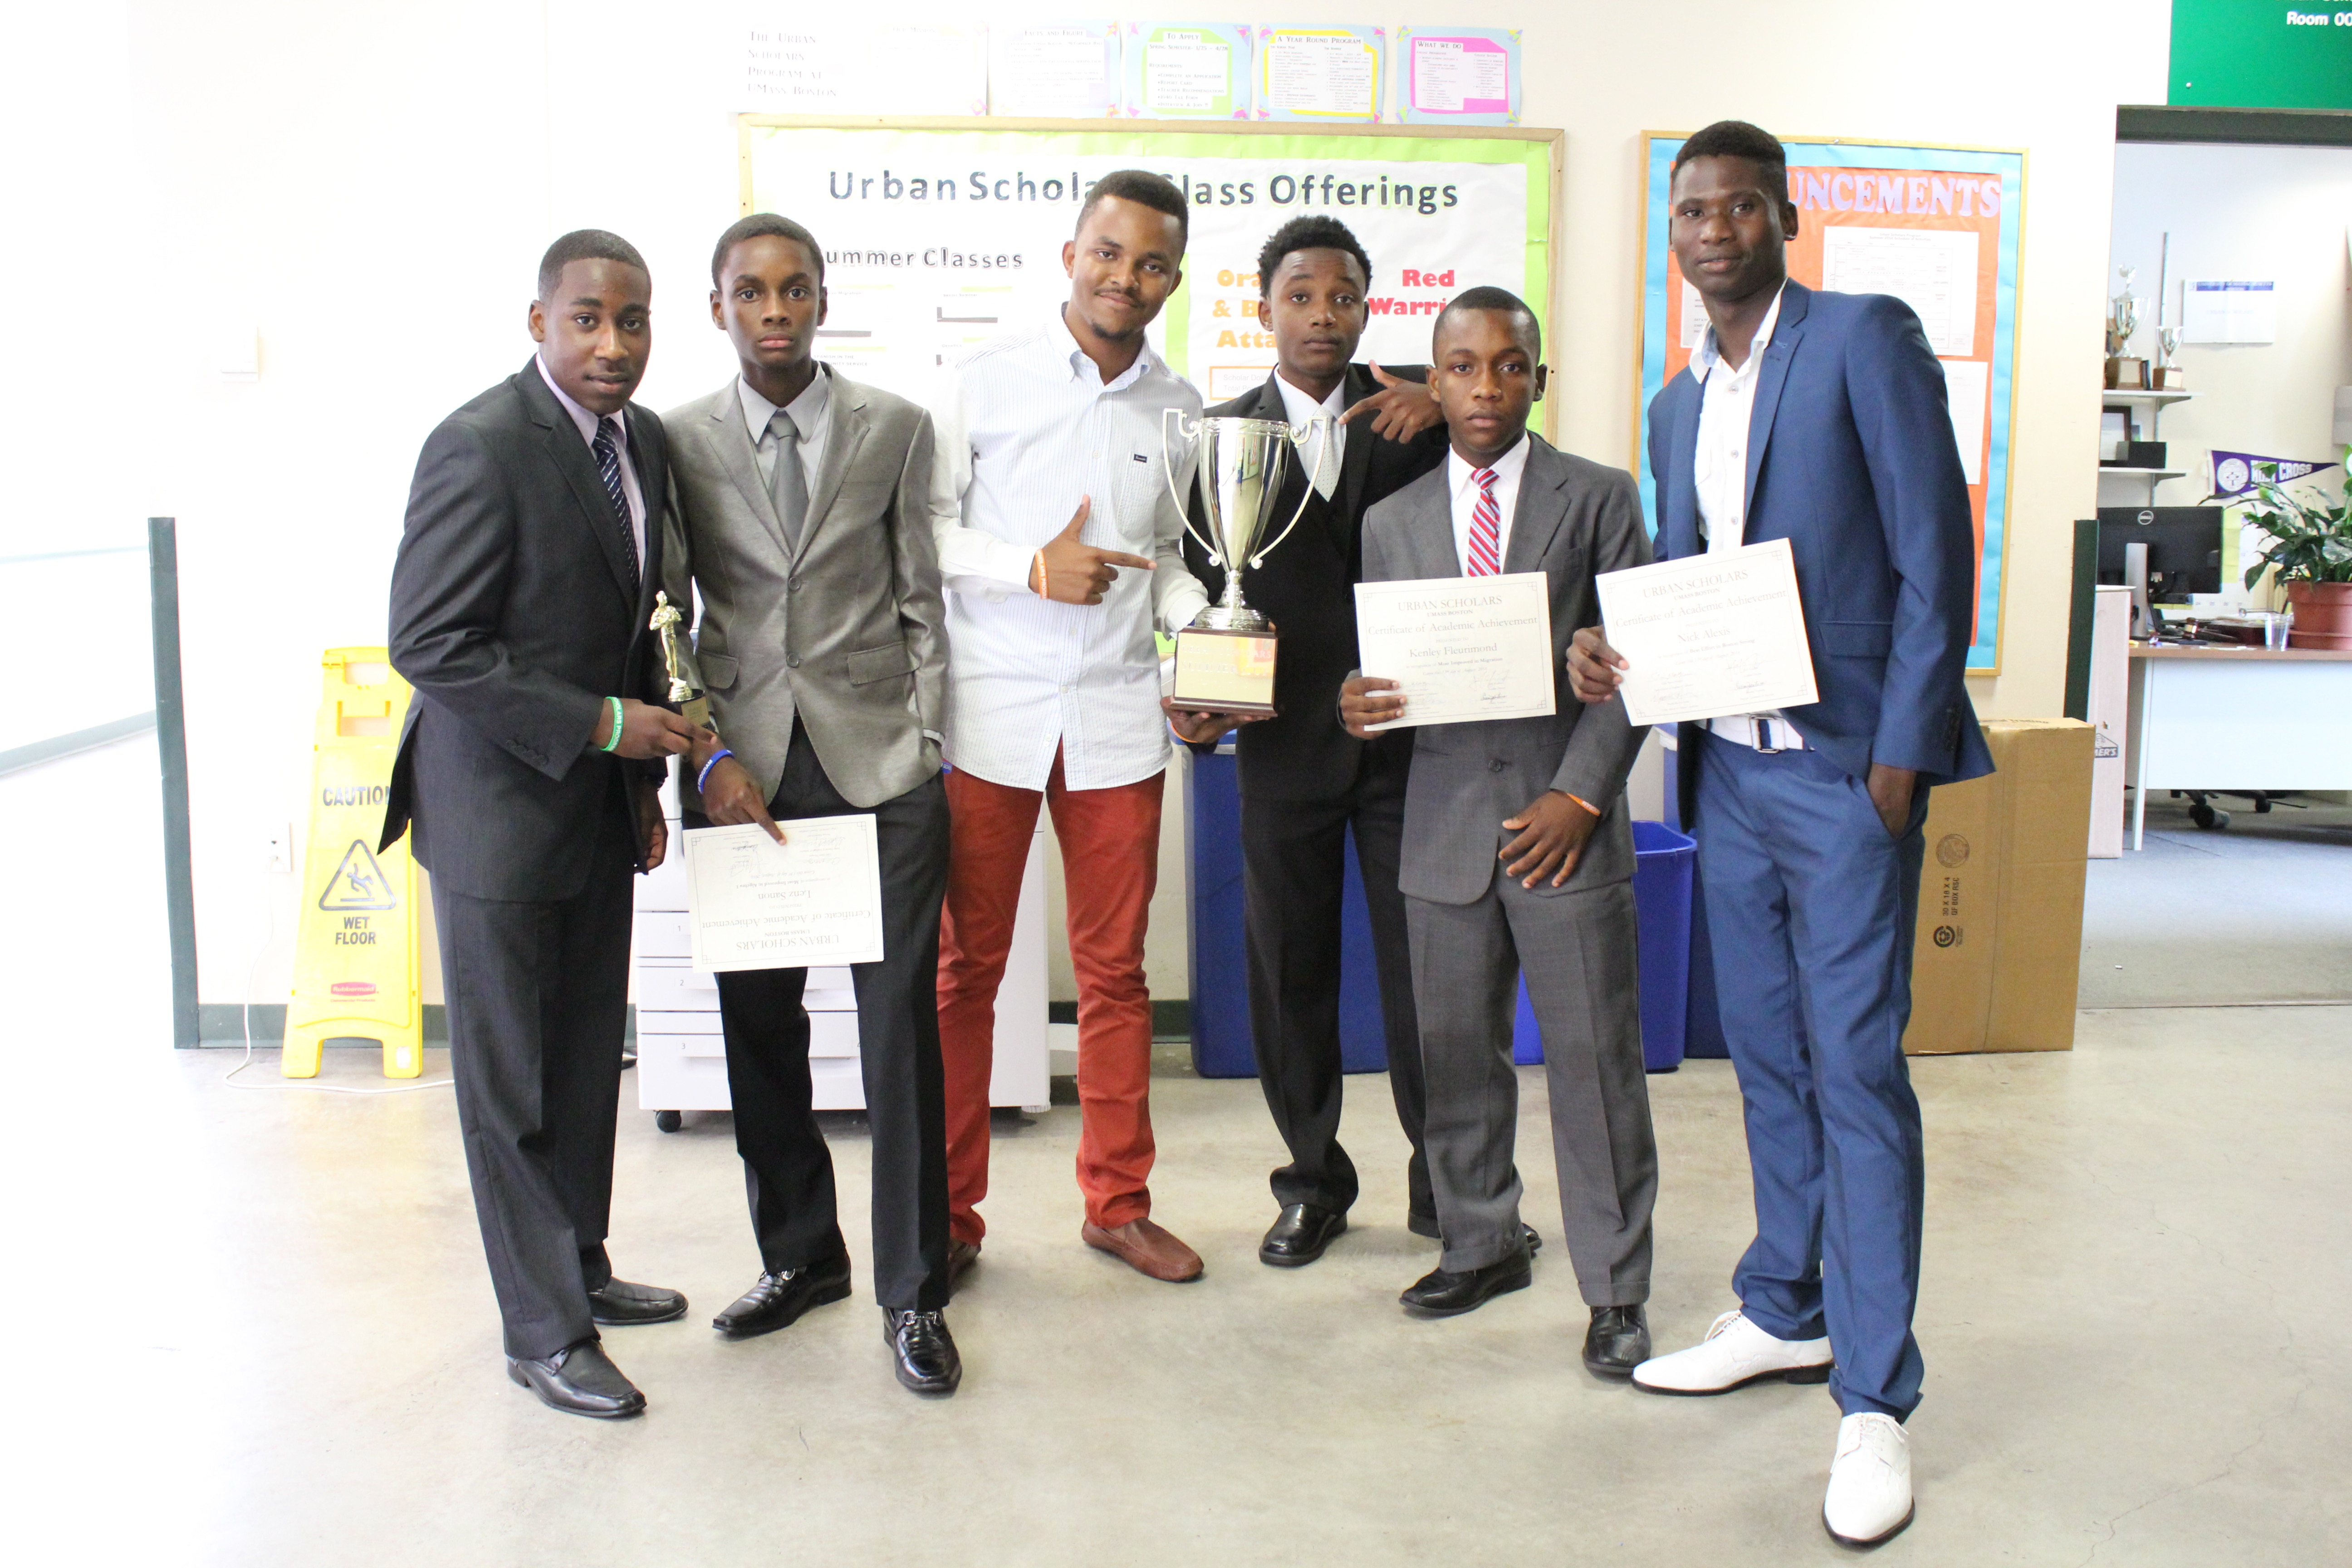 This group of Urban Scholars member shows off their awards!